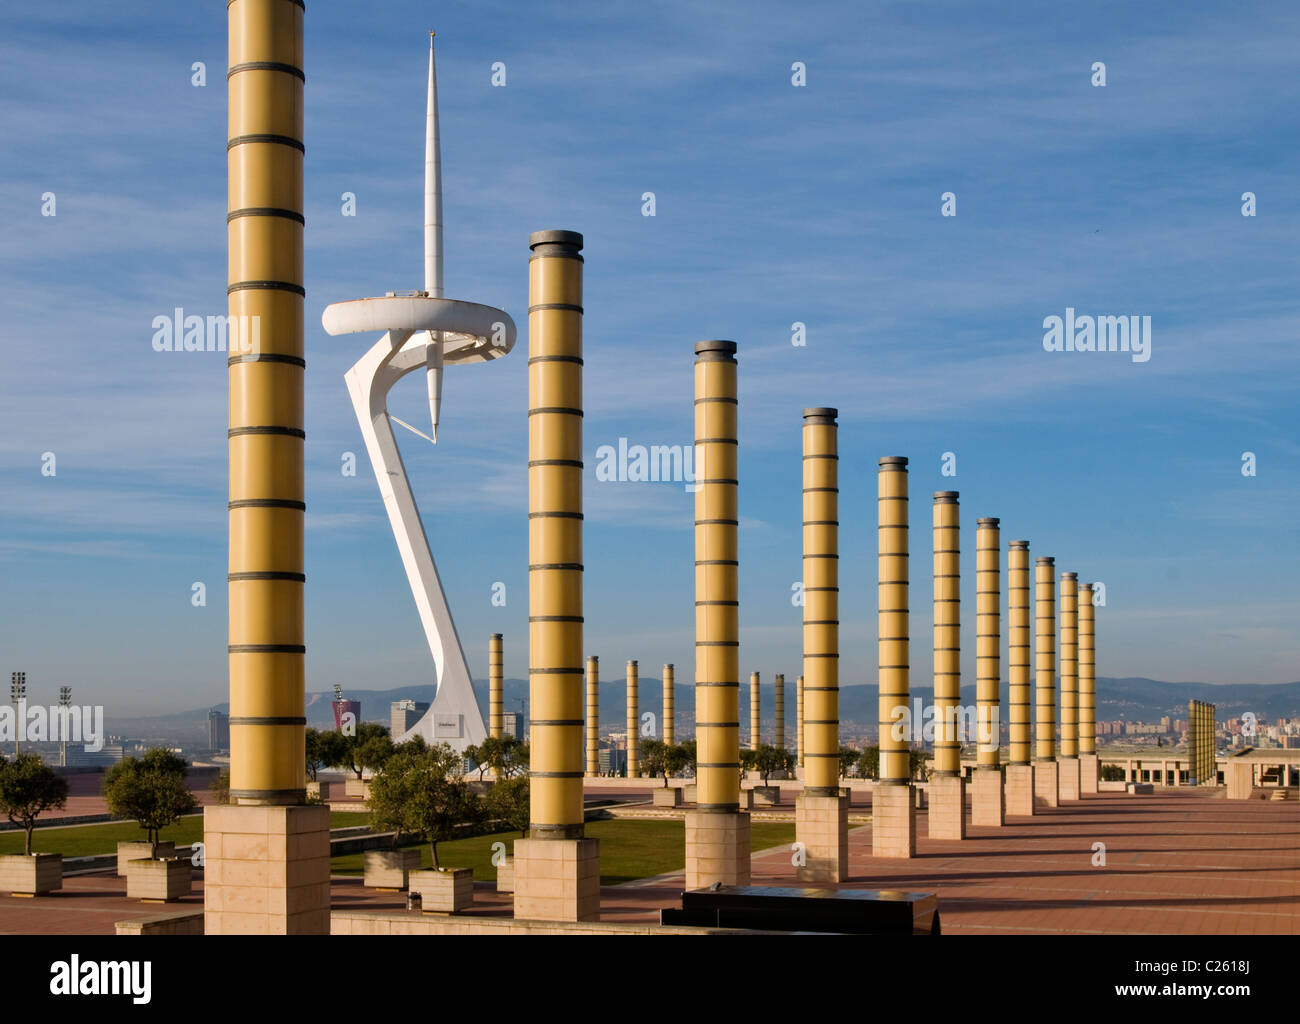 The Montjuic Communications Tower in Plaza de Europe, centre piece of the 1992 Olympics complex,Barcelona,Catalunya,Spain - Stock Image